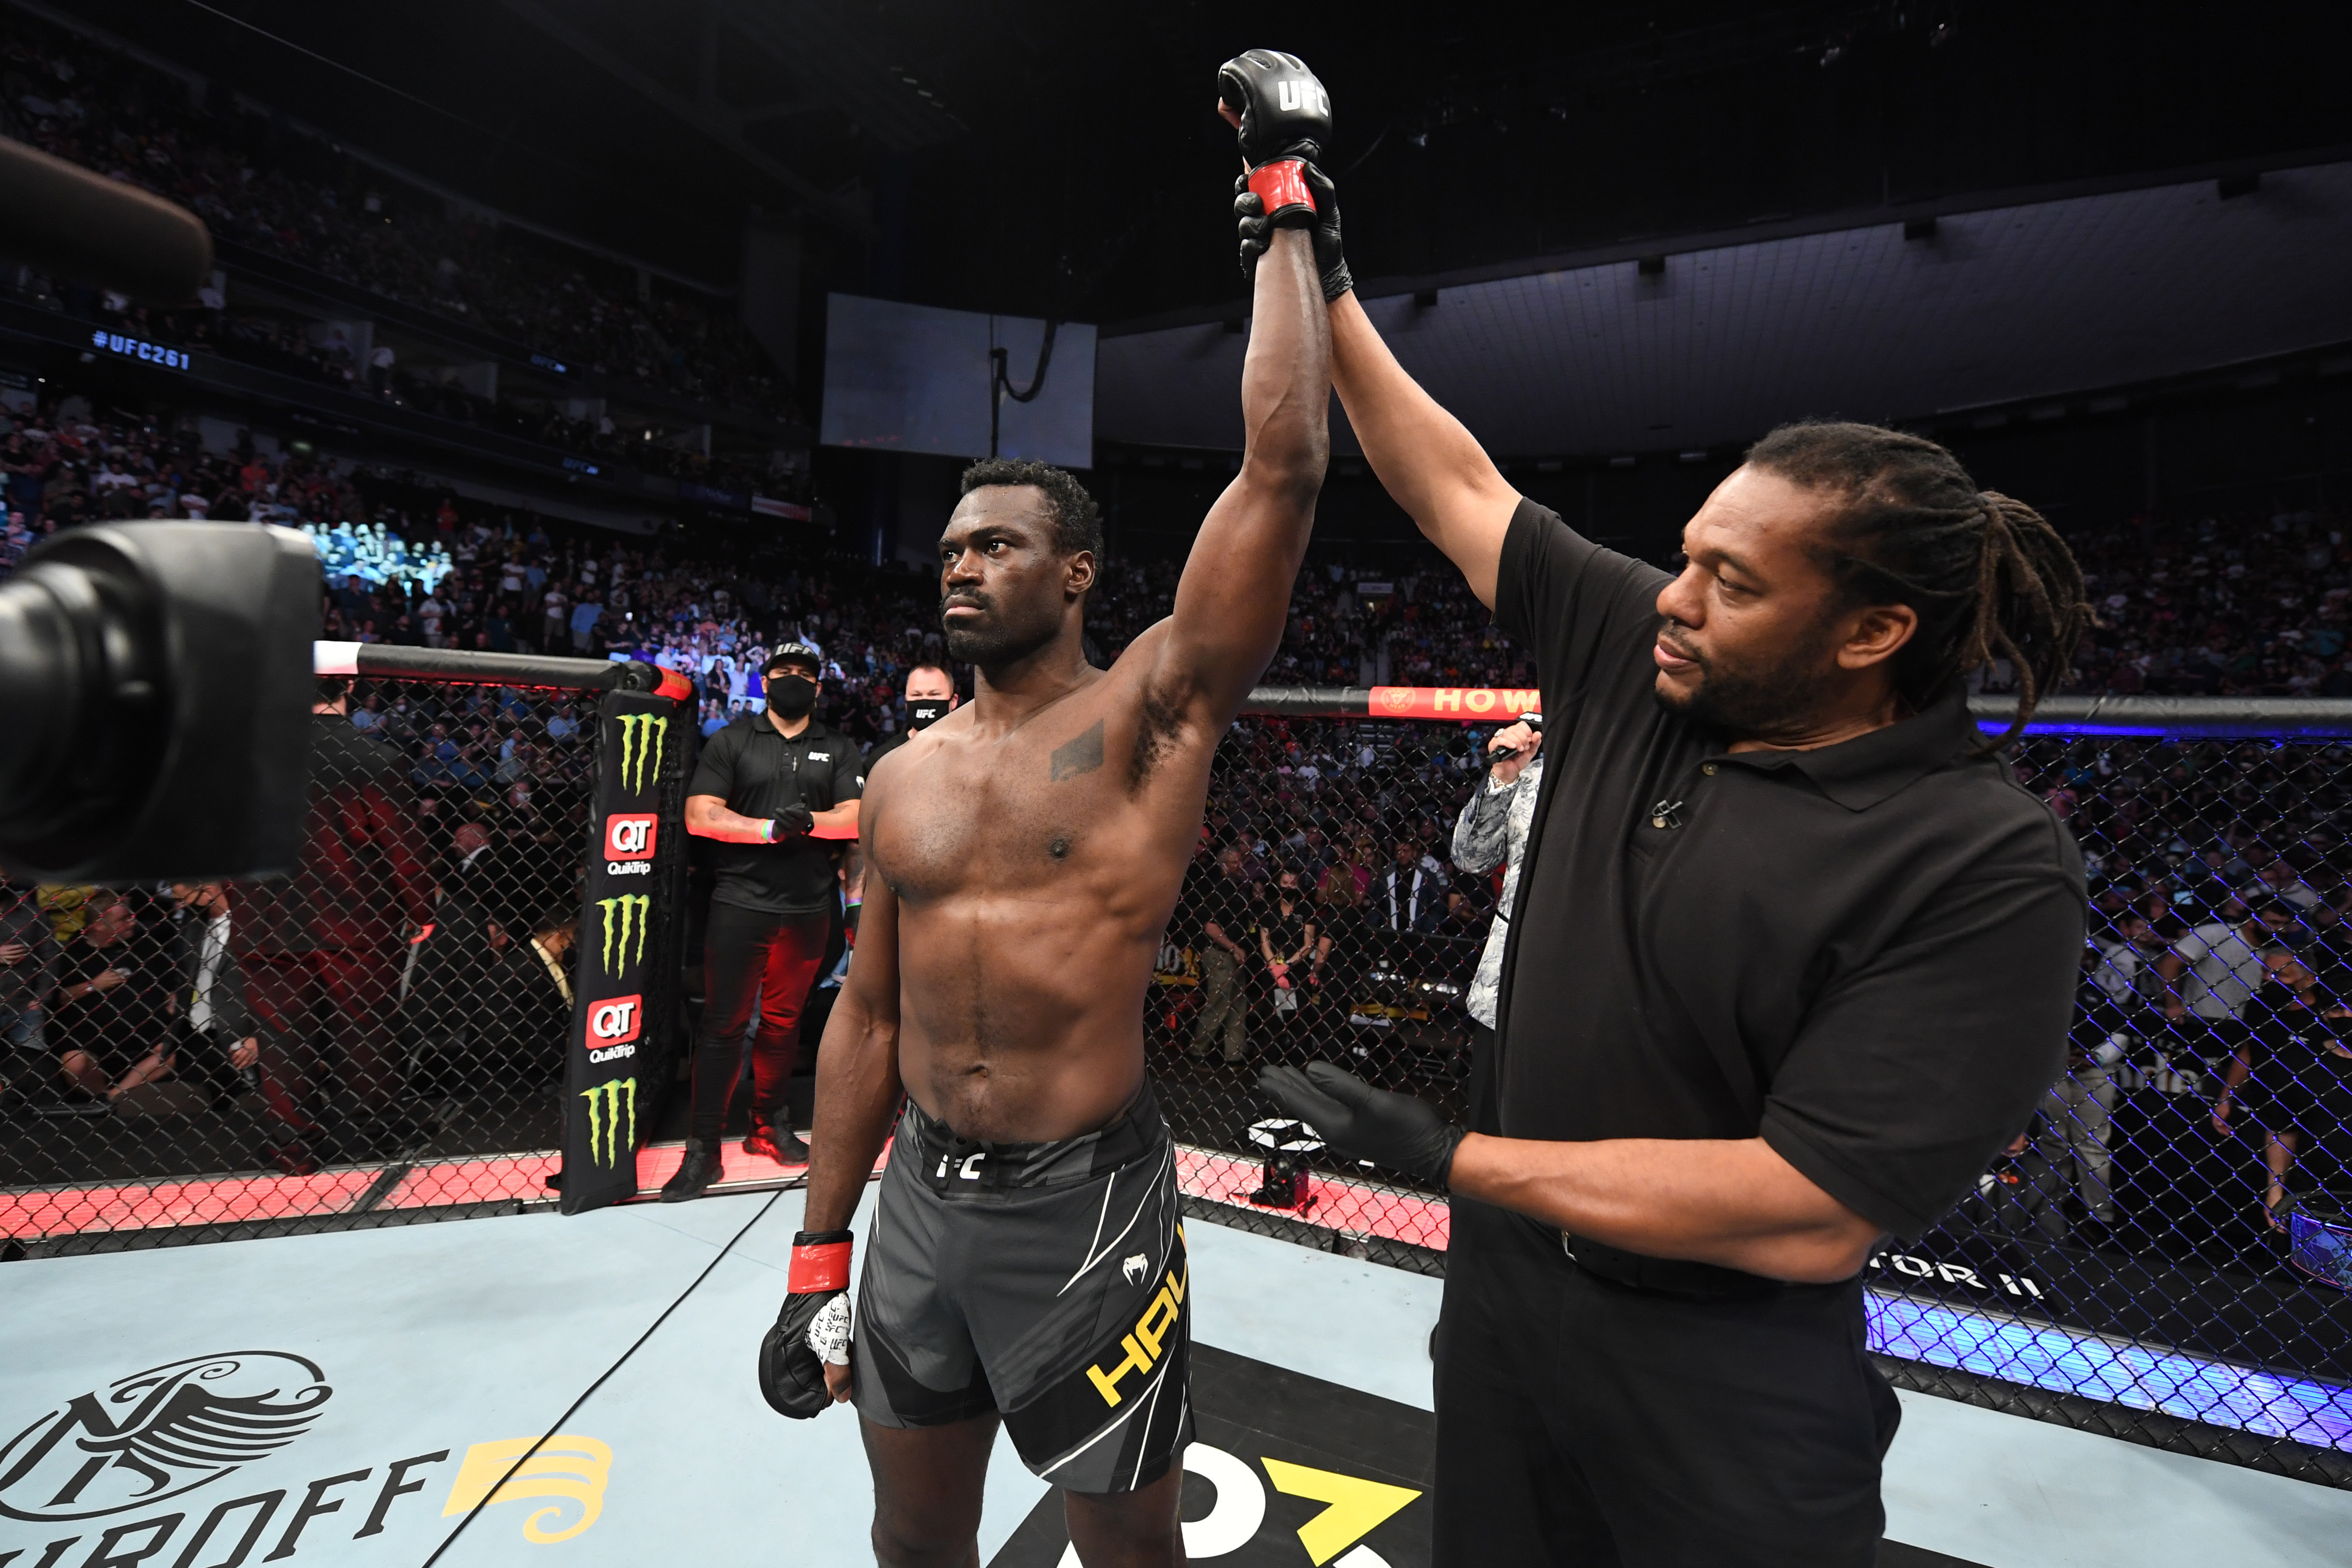 Uriah Hall of Jamaica reacts after defeating Chris Weidman in their middleweight bout during the UFC 261 event at VyStar Veterans Memorial Arena on April 24, 2021 in Jacksonville, Florida.